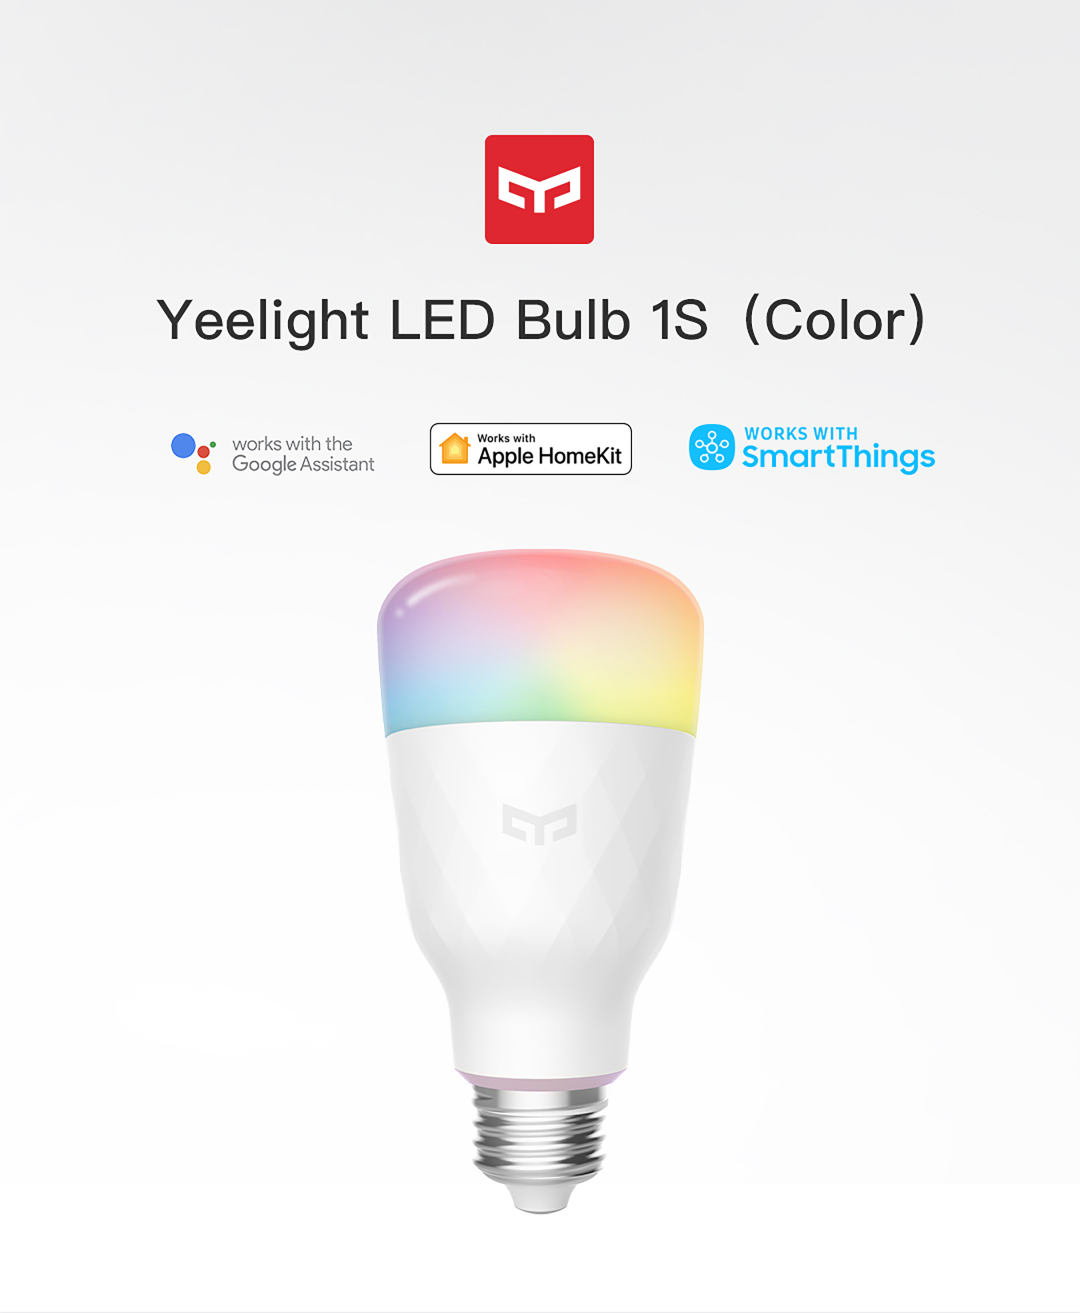 Yeelight LED Bulb 1S (Color)